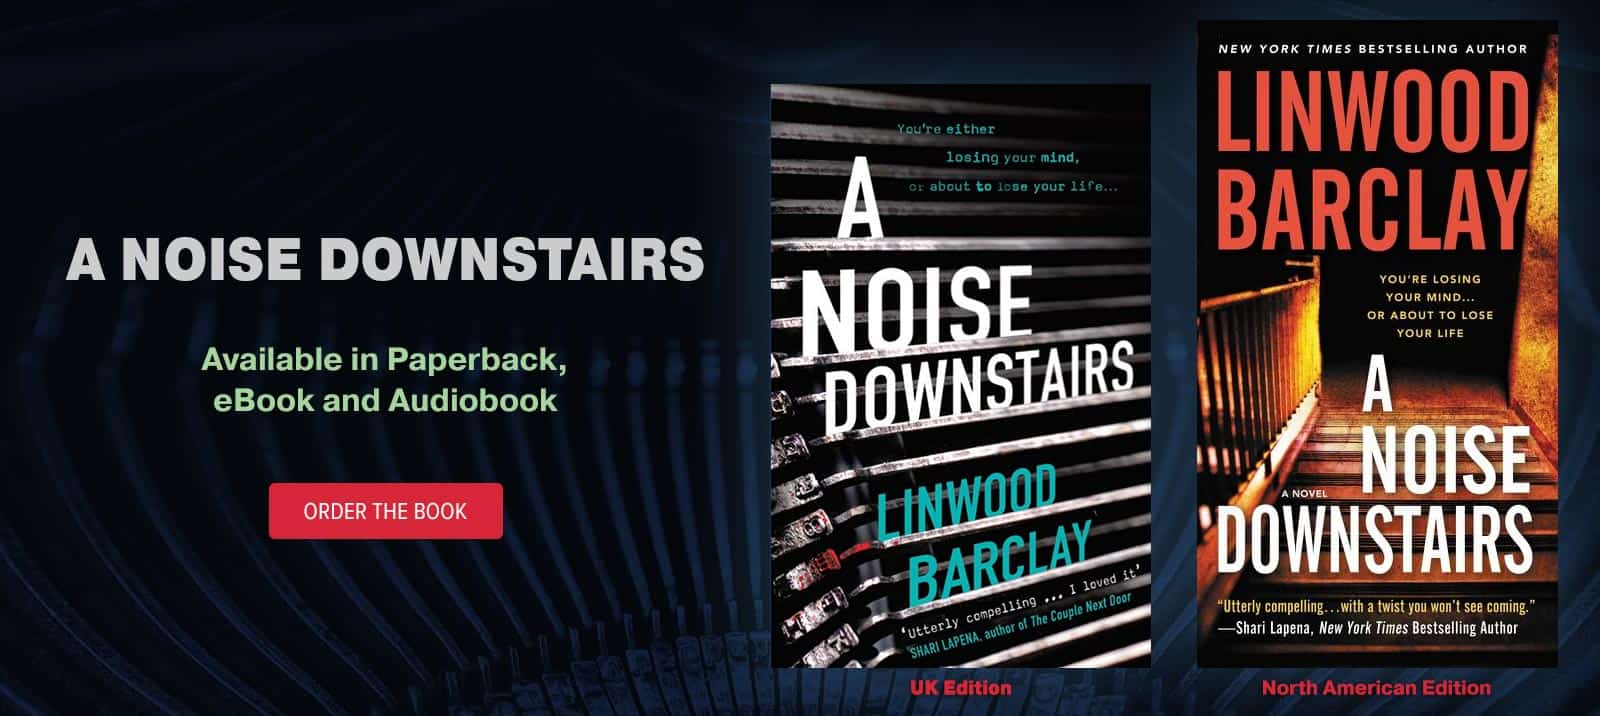 'A Noise Downstairs' by Linwood Barclay, Now in Paperback, eBook and Audiobook